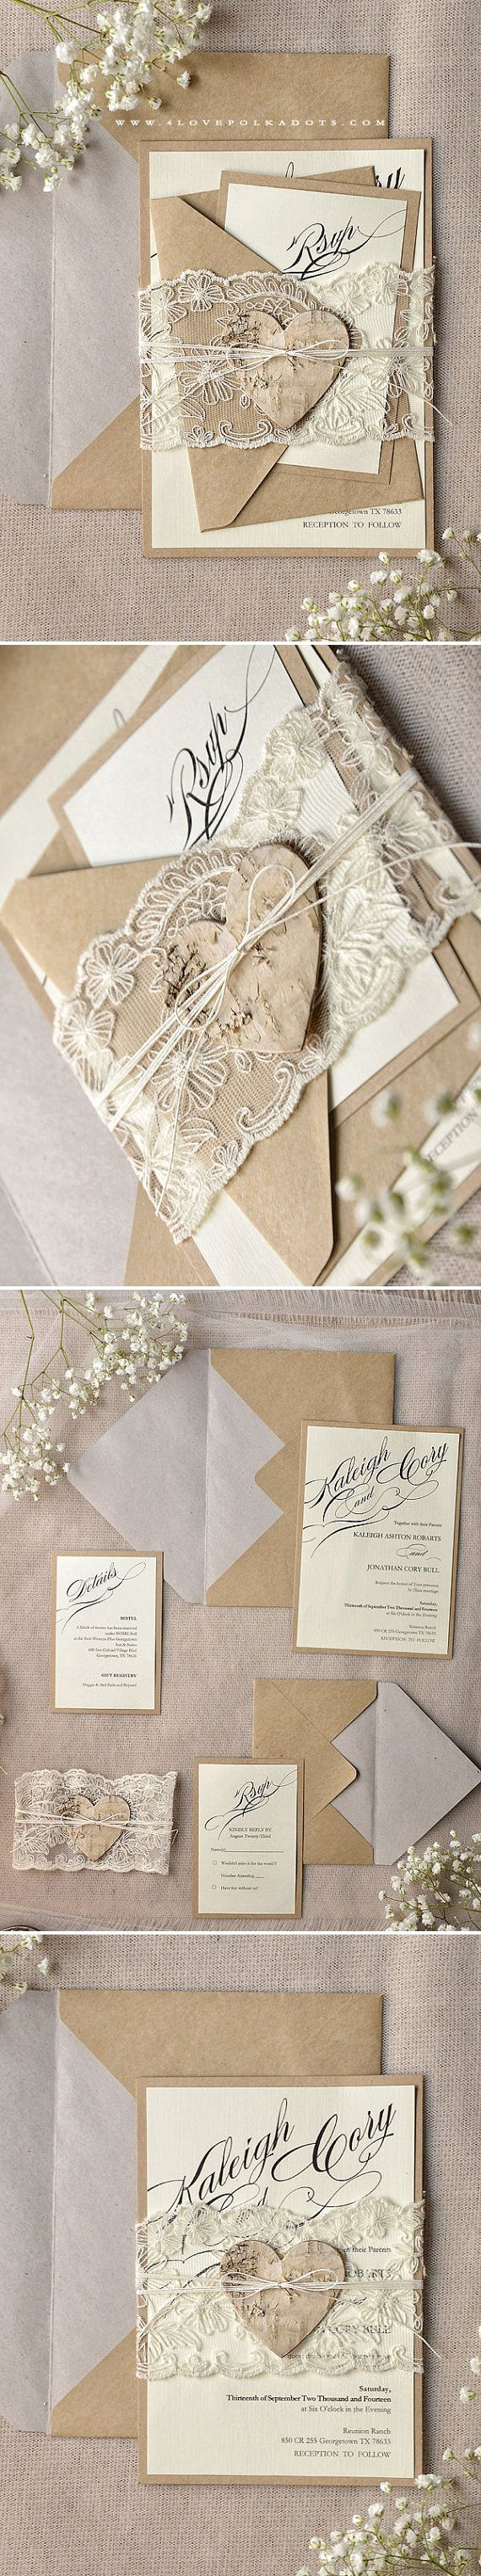 974 Best Wedding Invitation Images On Pinterest Invitation Ideas